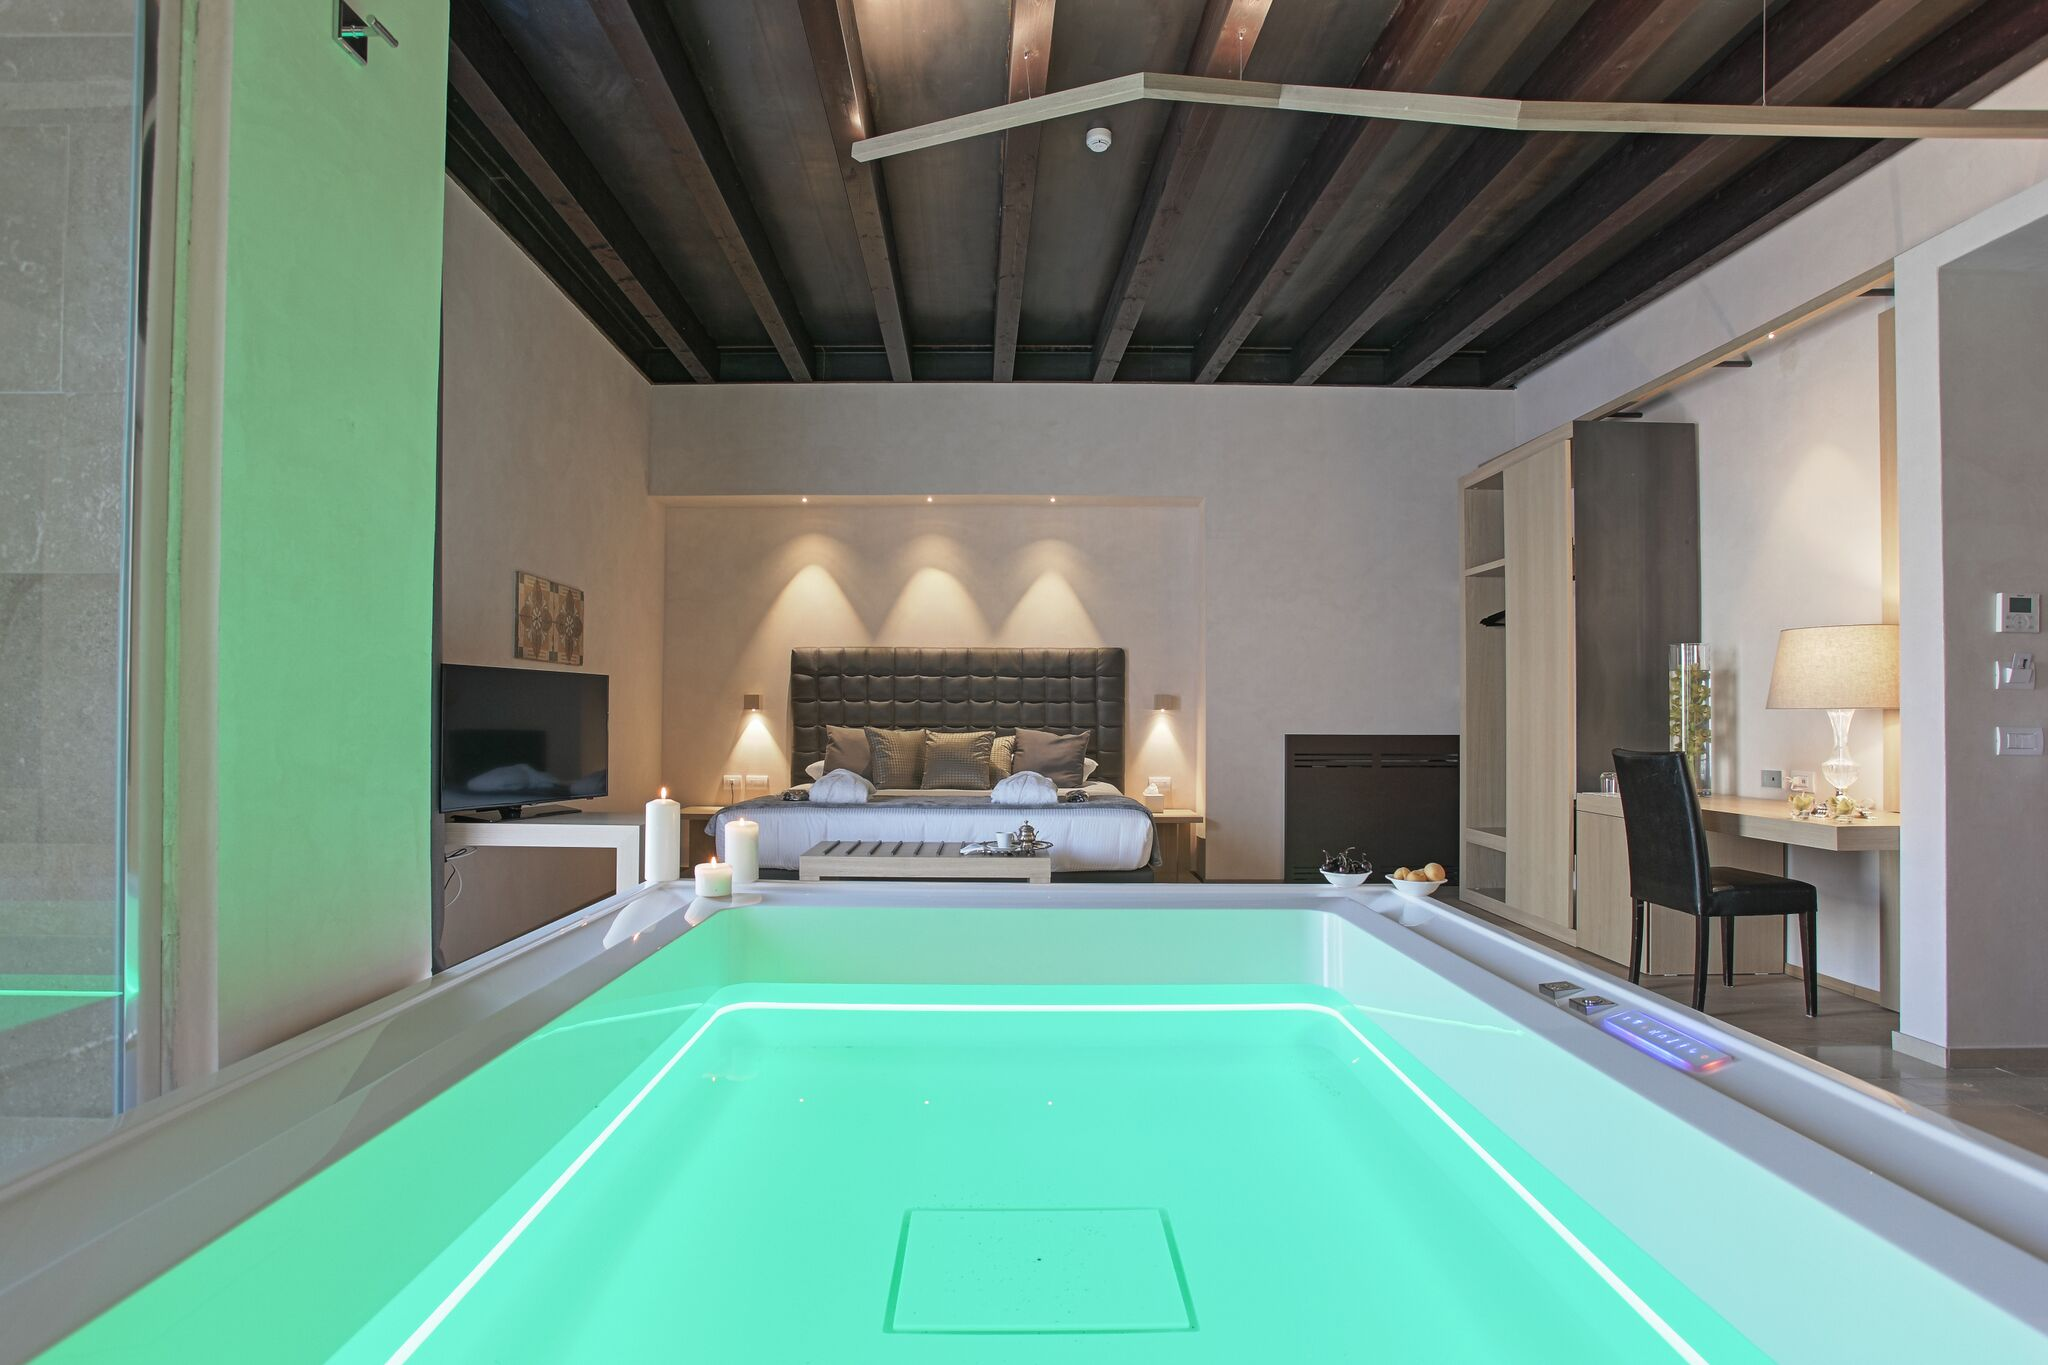 A new hotel in the heart of authentic sicily between for Design hotel sicily